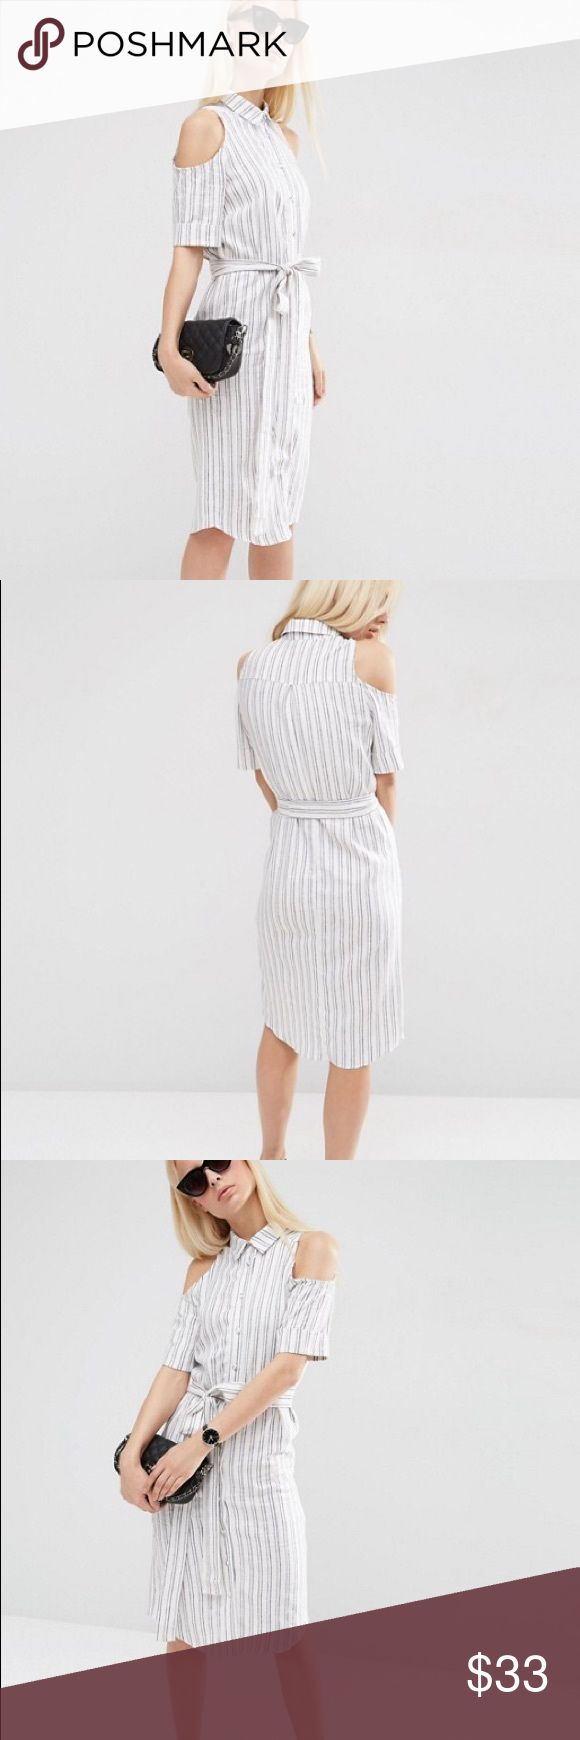 NWT ASOS shirt dress NWT ASOS cold shoulder shirt dress in stripe. Never came with the belt! ASOS Dresses Midi